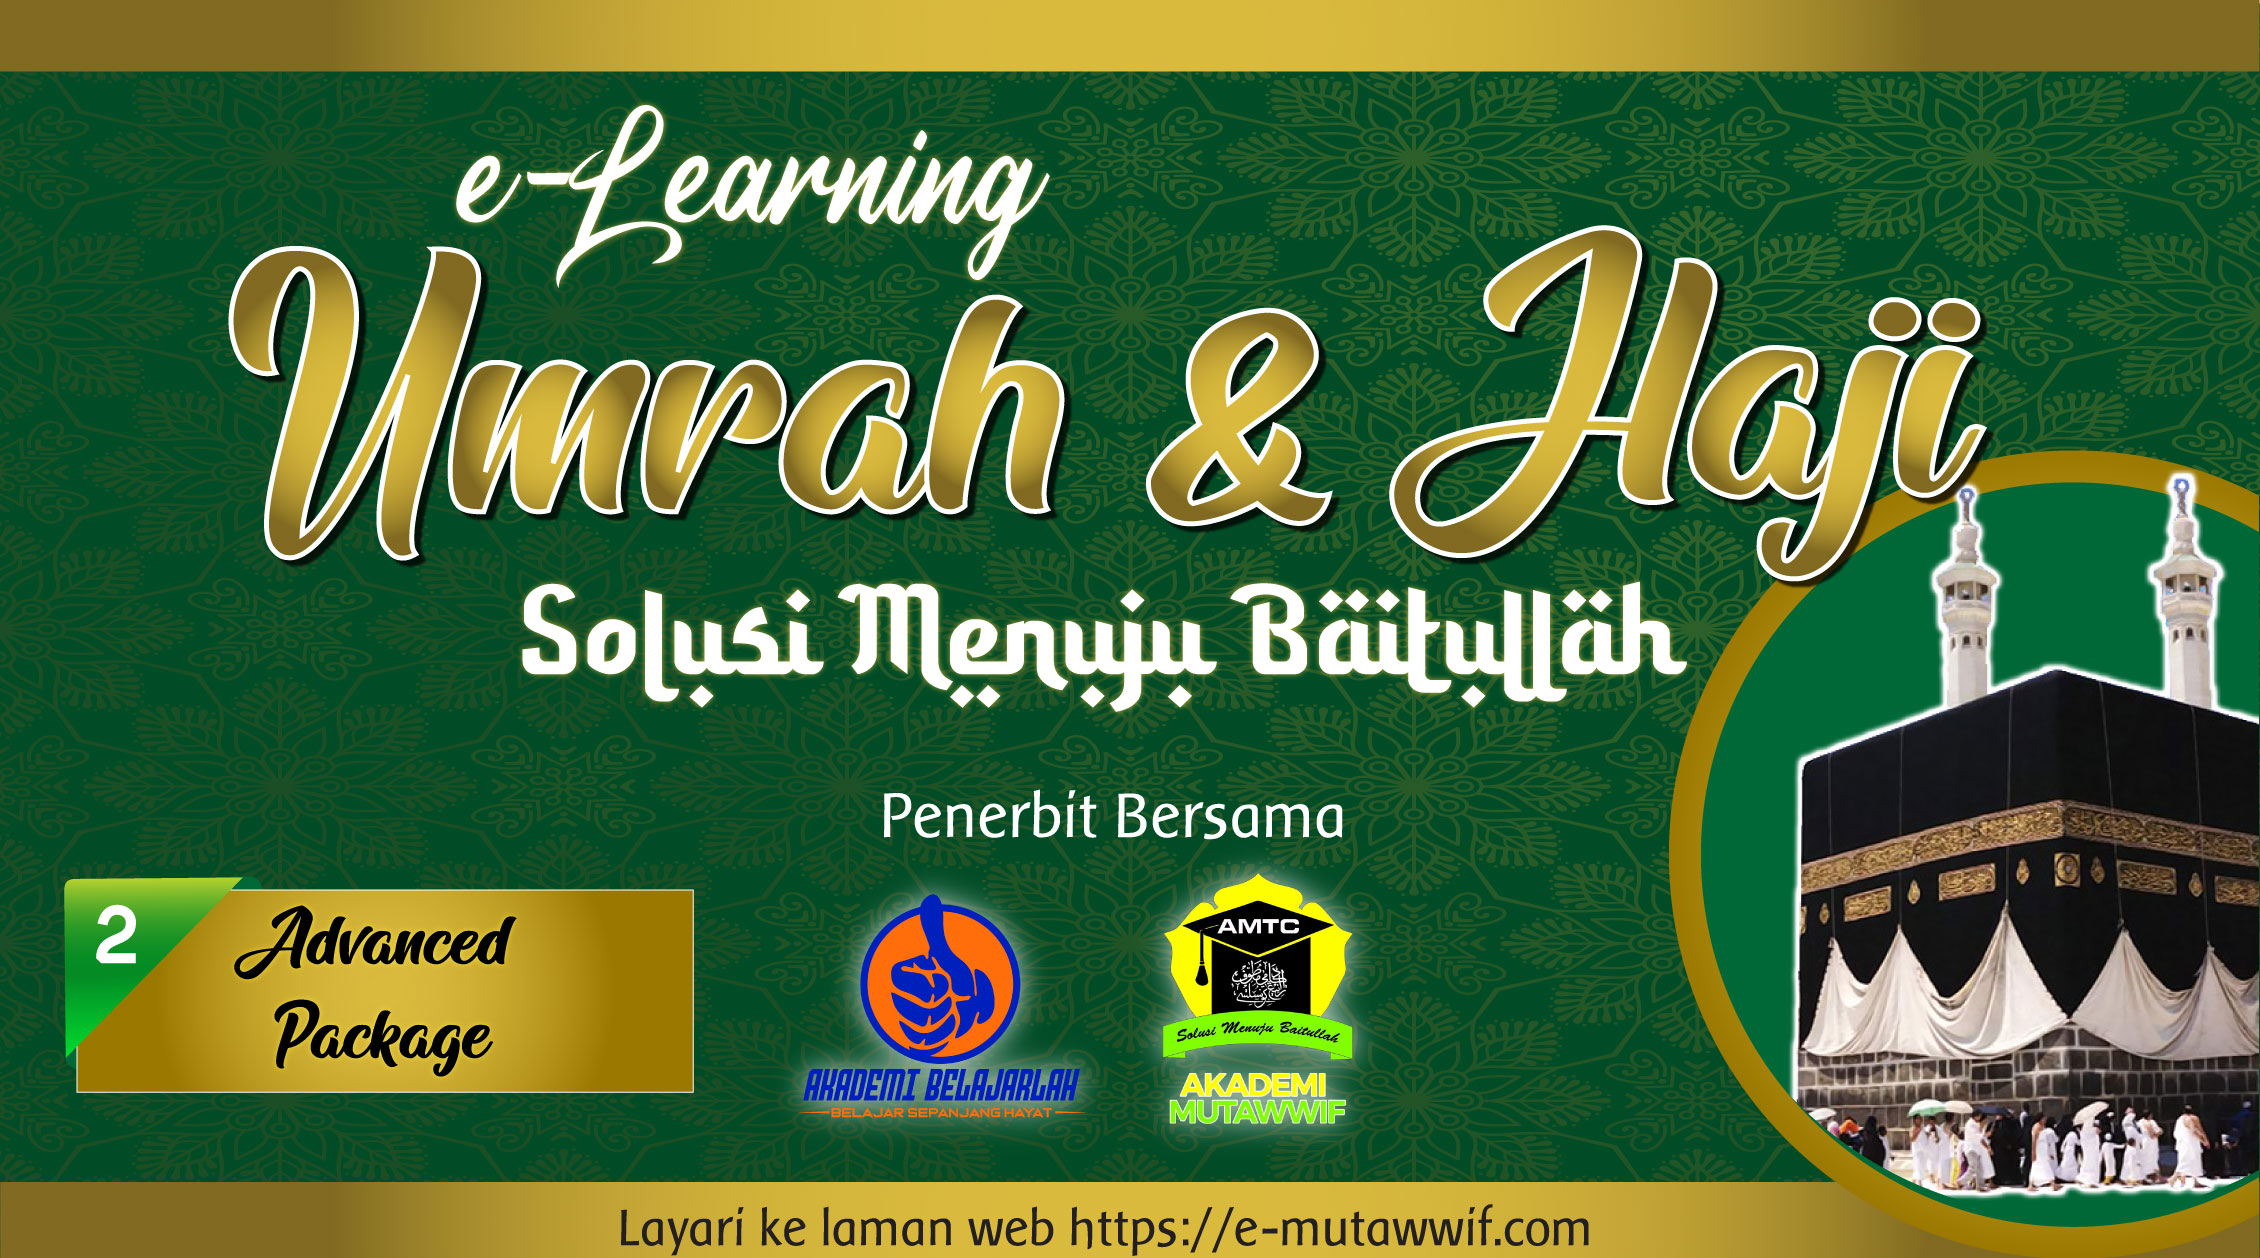 e-Learning Umrah & Haji (Advanced Package)